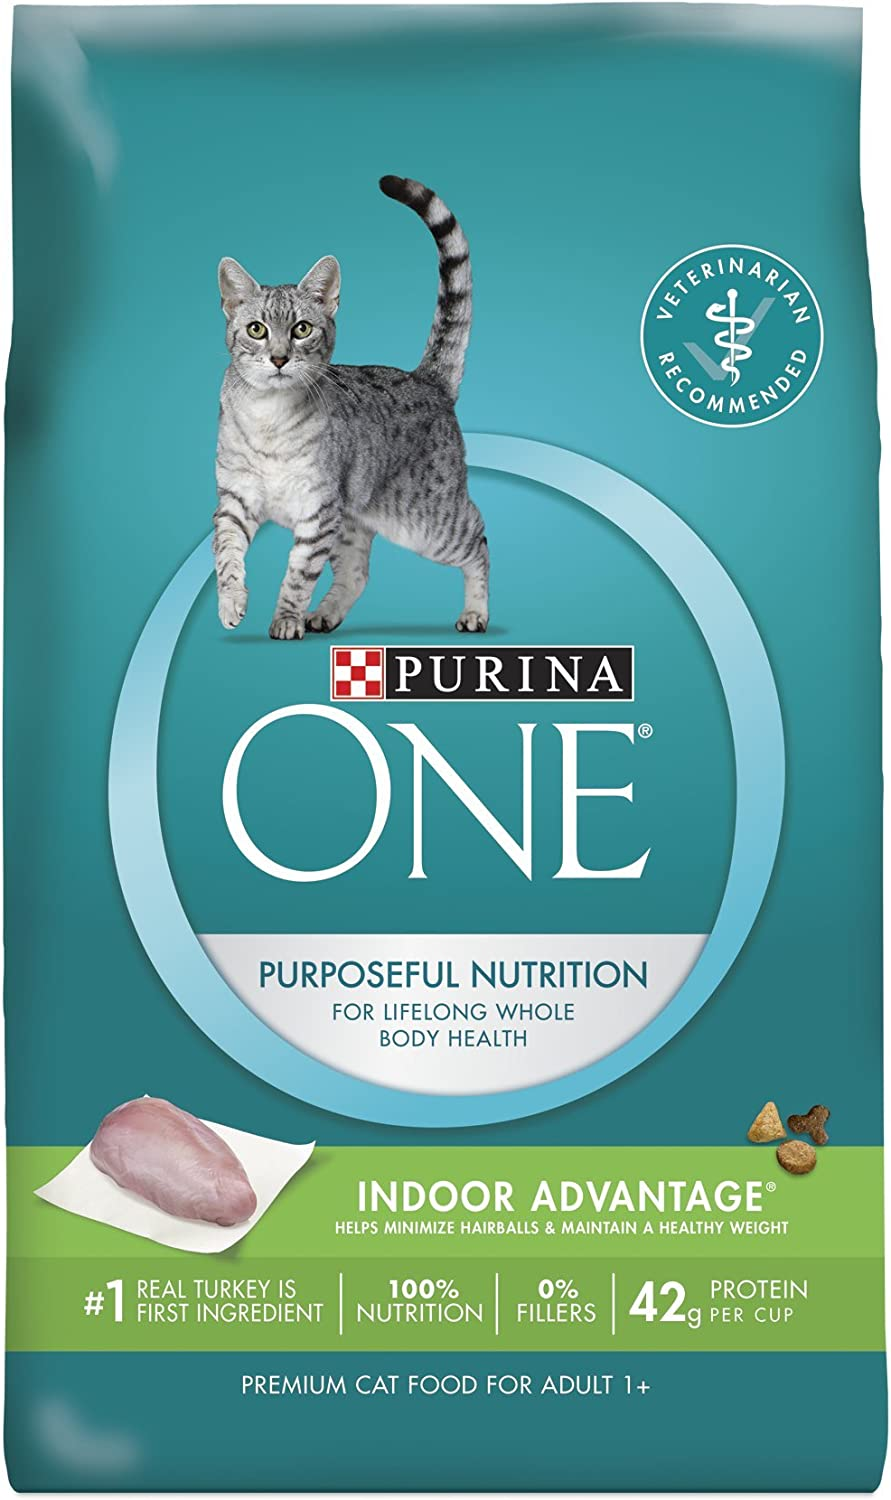 Purina ONE Dry Cat Food, Indoor Advantage, 7 Pound